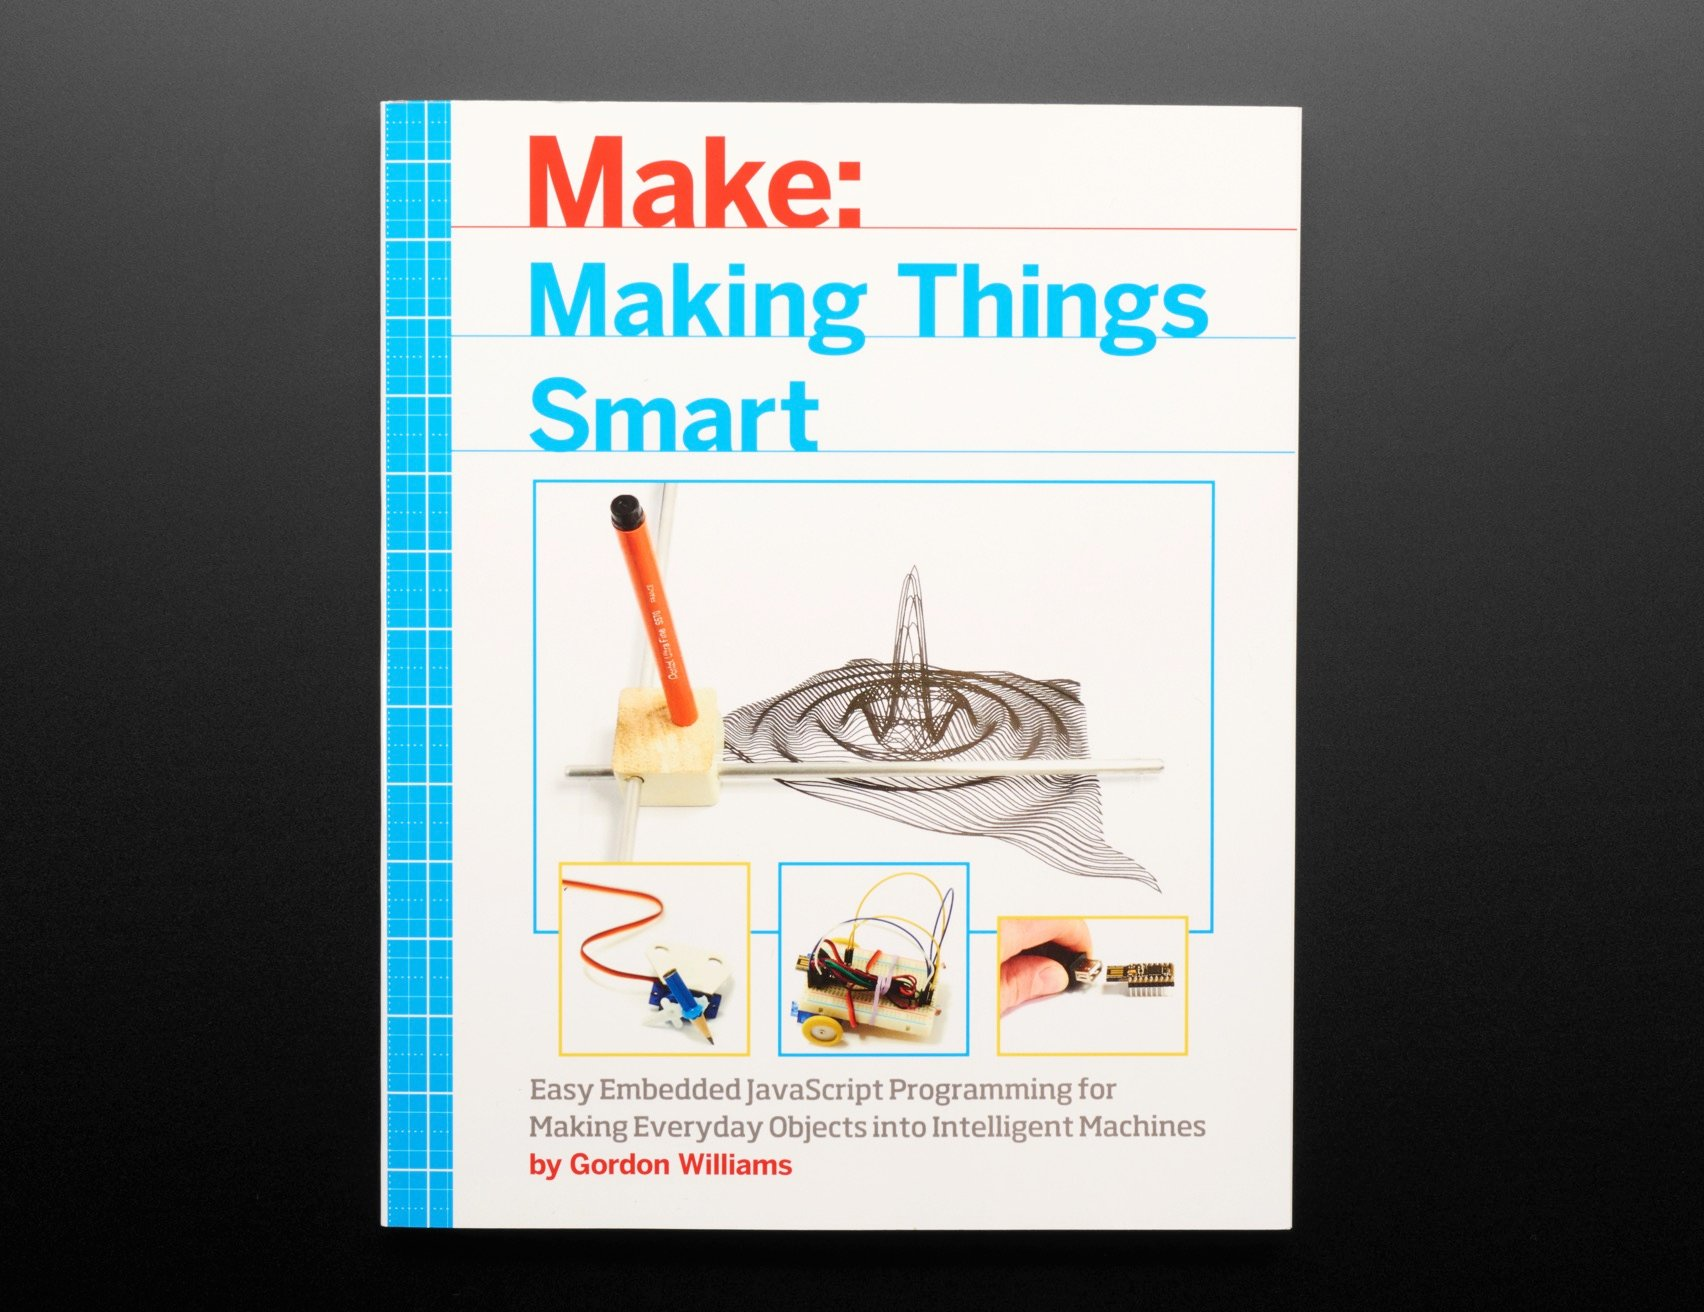 Easy Embedded JavaScript Programming for Making Everyday Objects into Intelligent Machines Making Things Smart